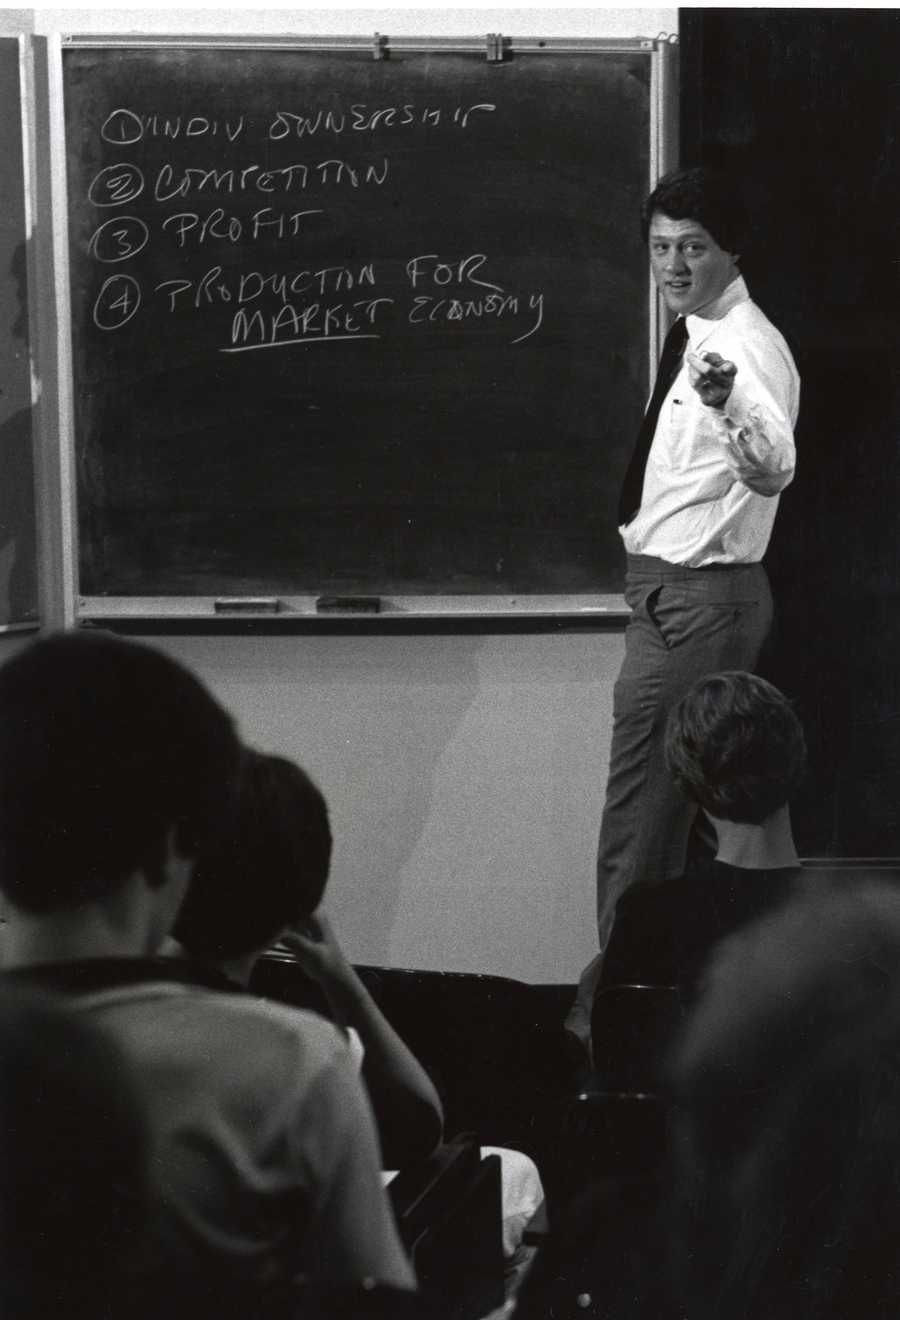 Bill Clinton teaching